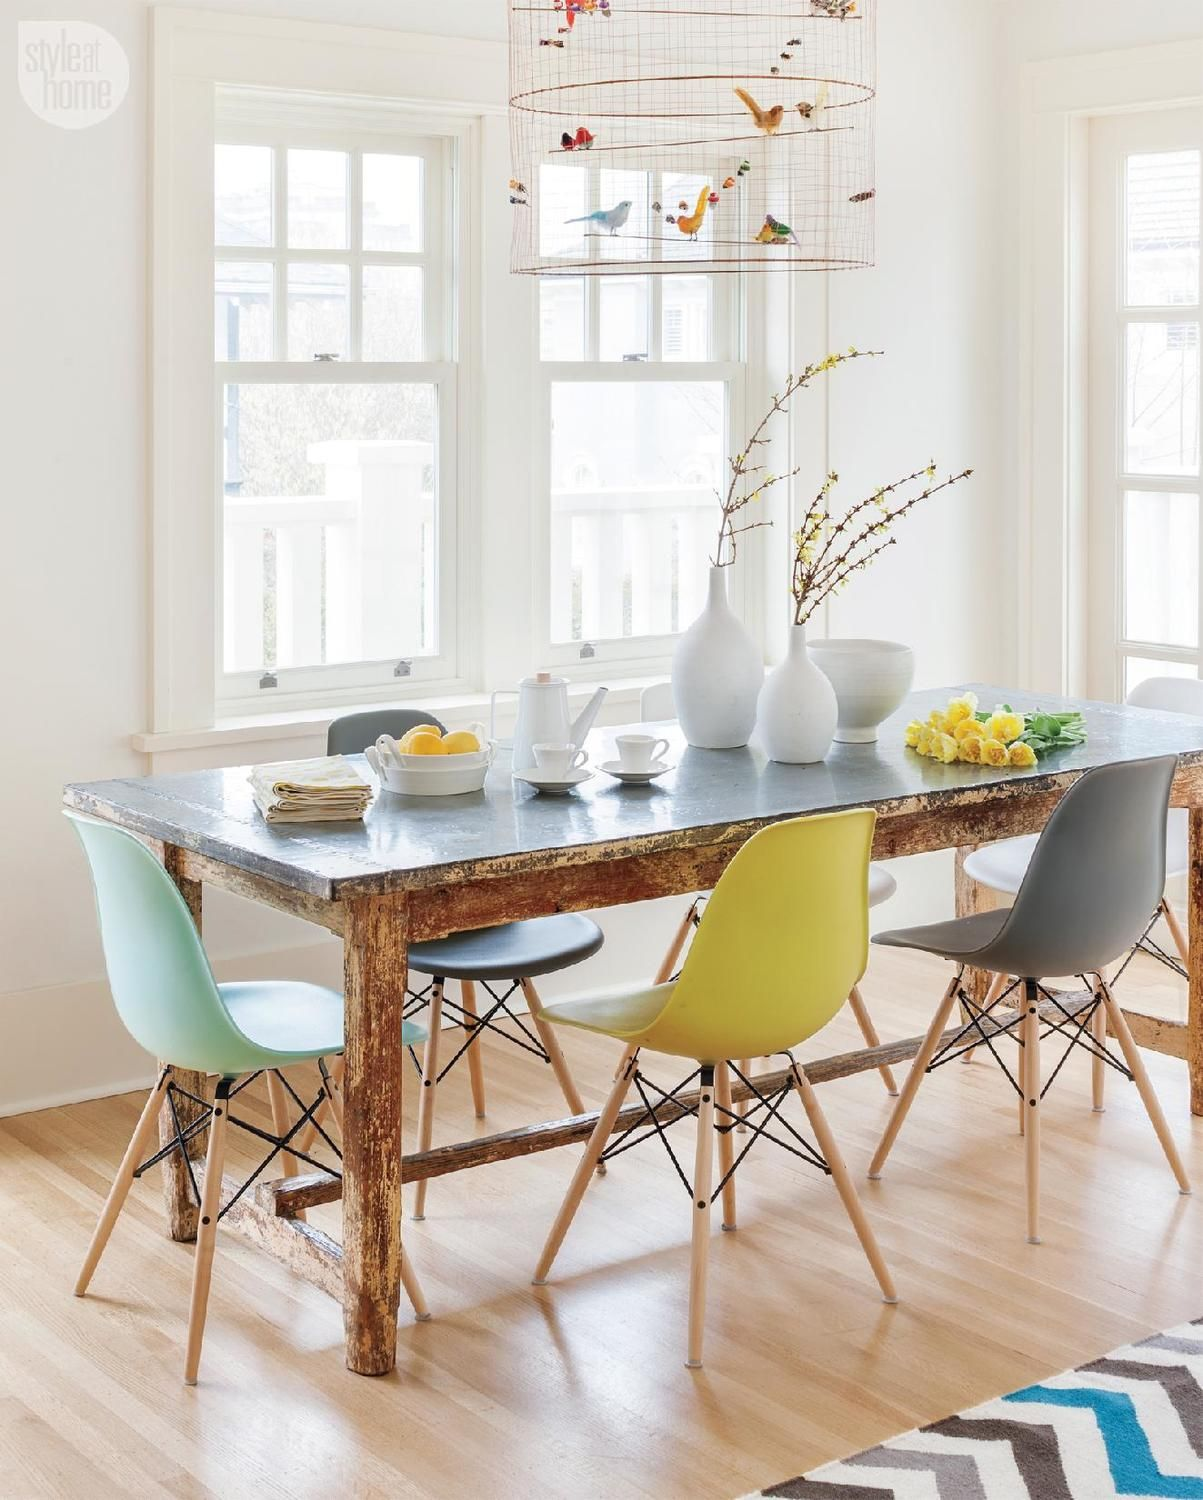 House tour: Modern eclectic family home | Organization ideas ...